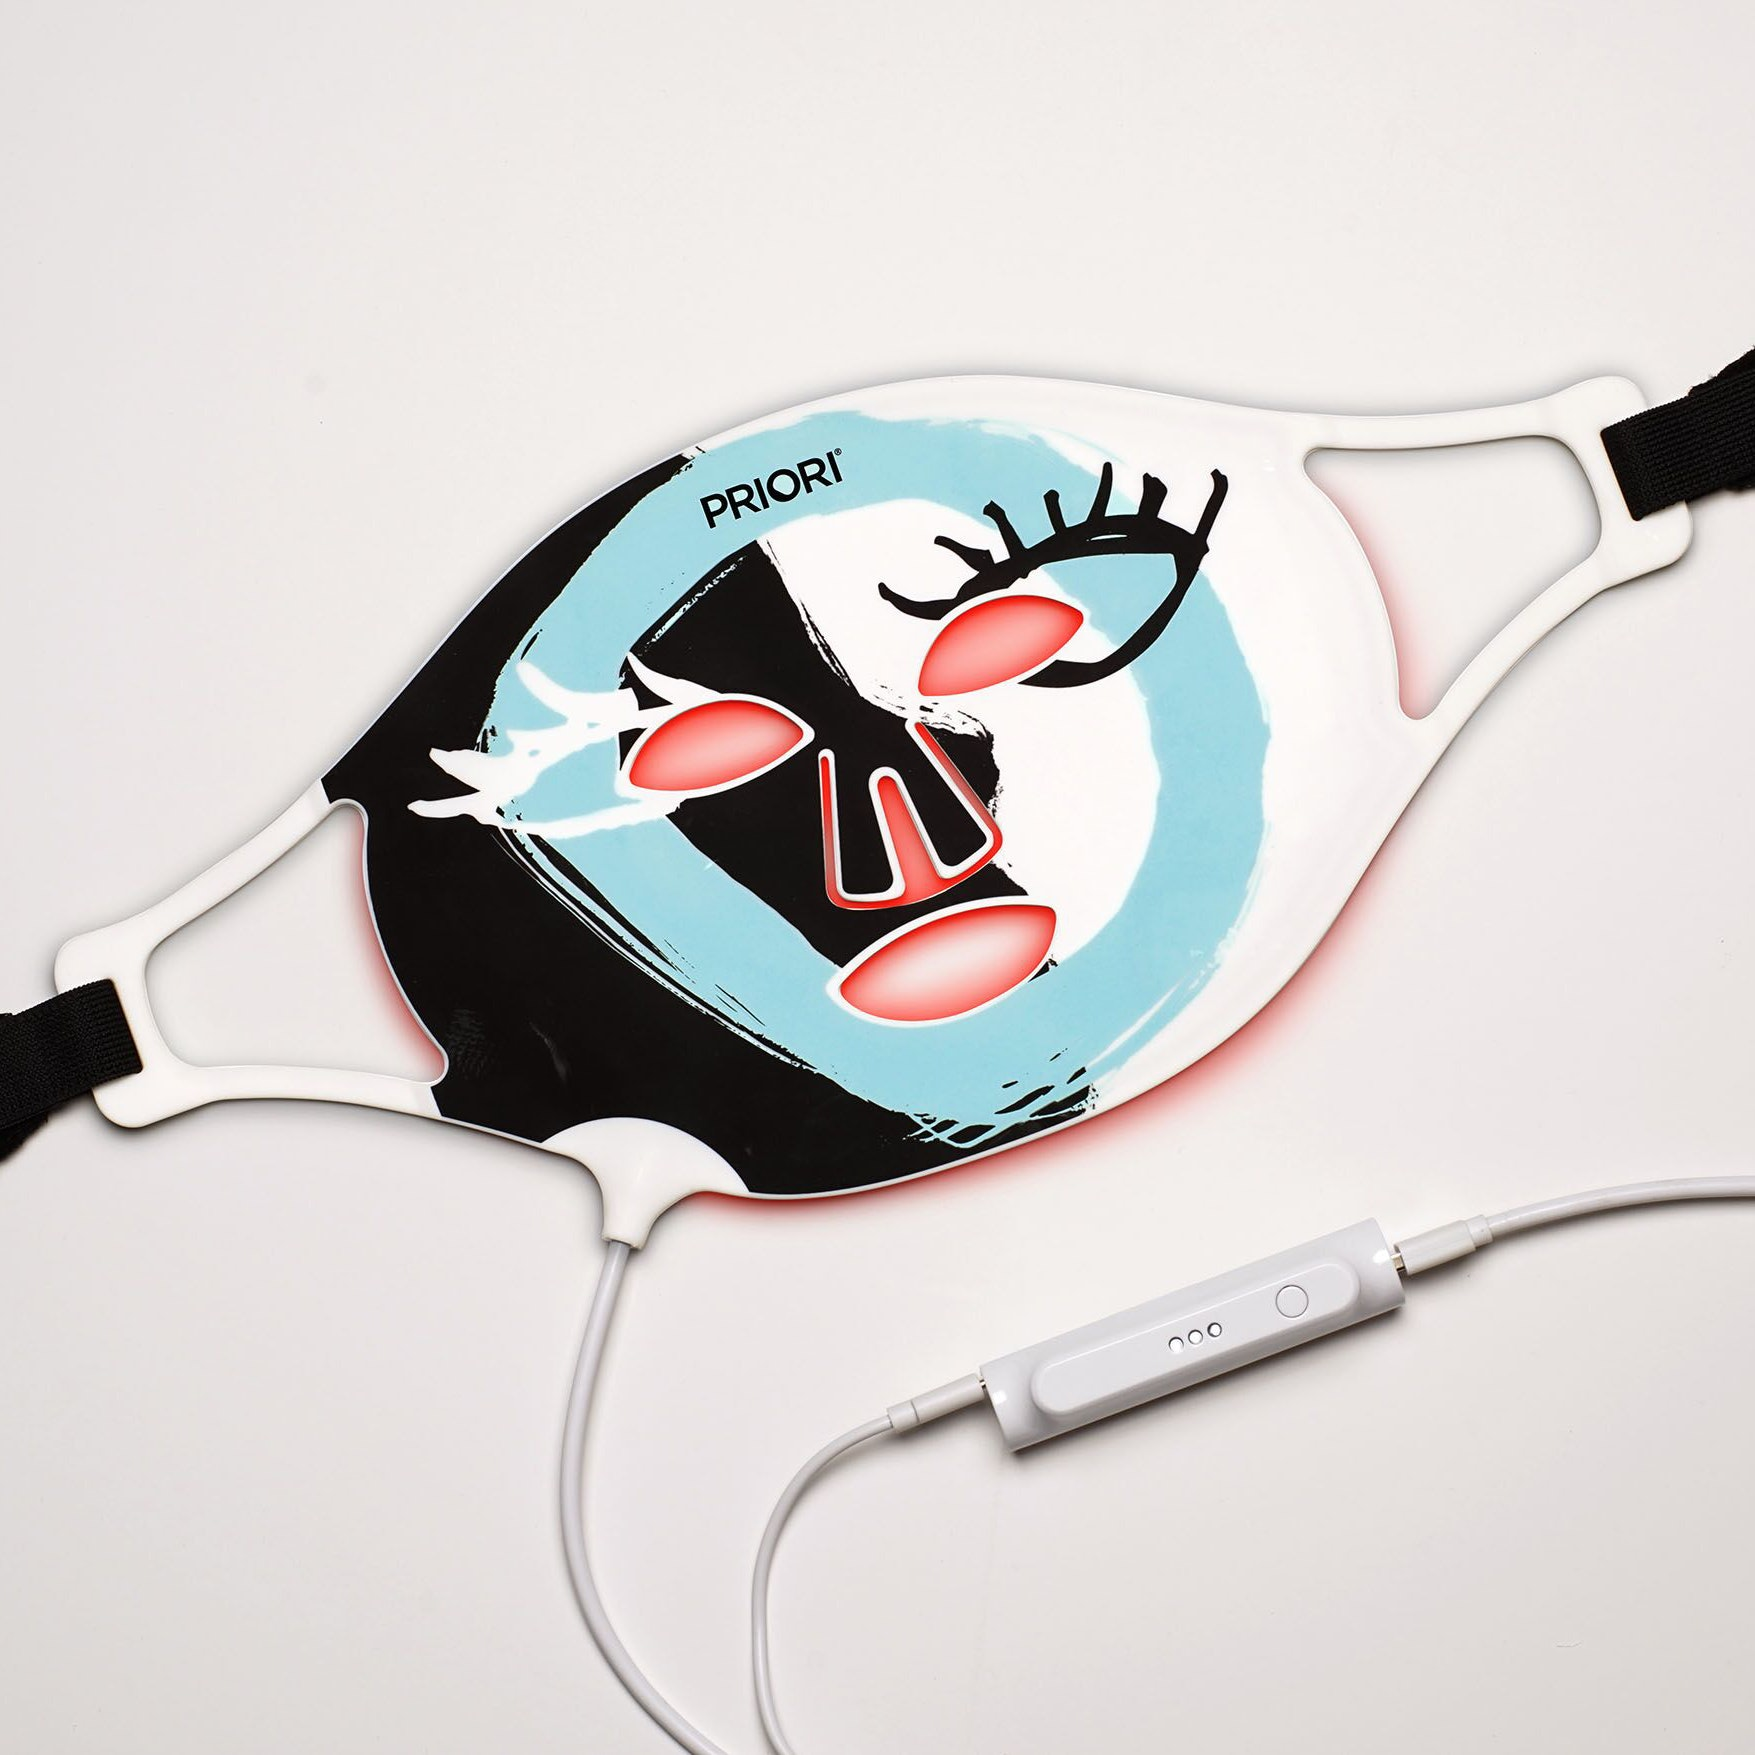 PRIORI® UNVEILED Flexible LED Light Therapy Mask